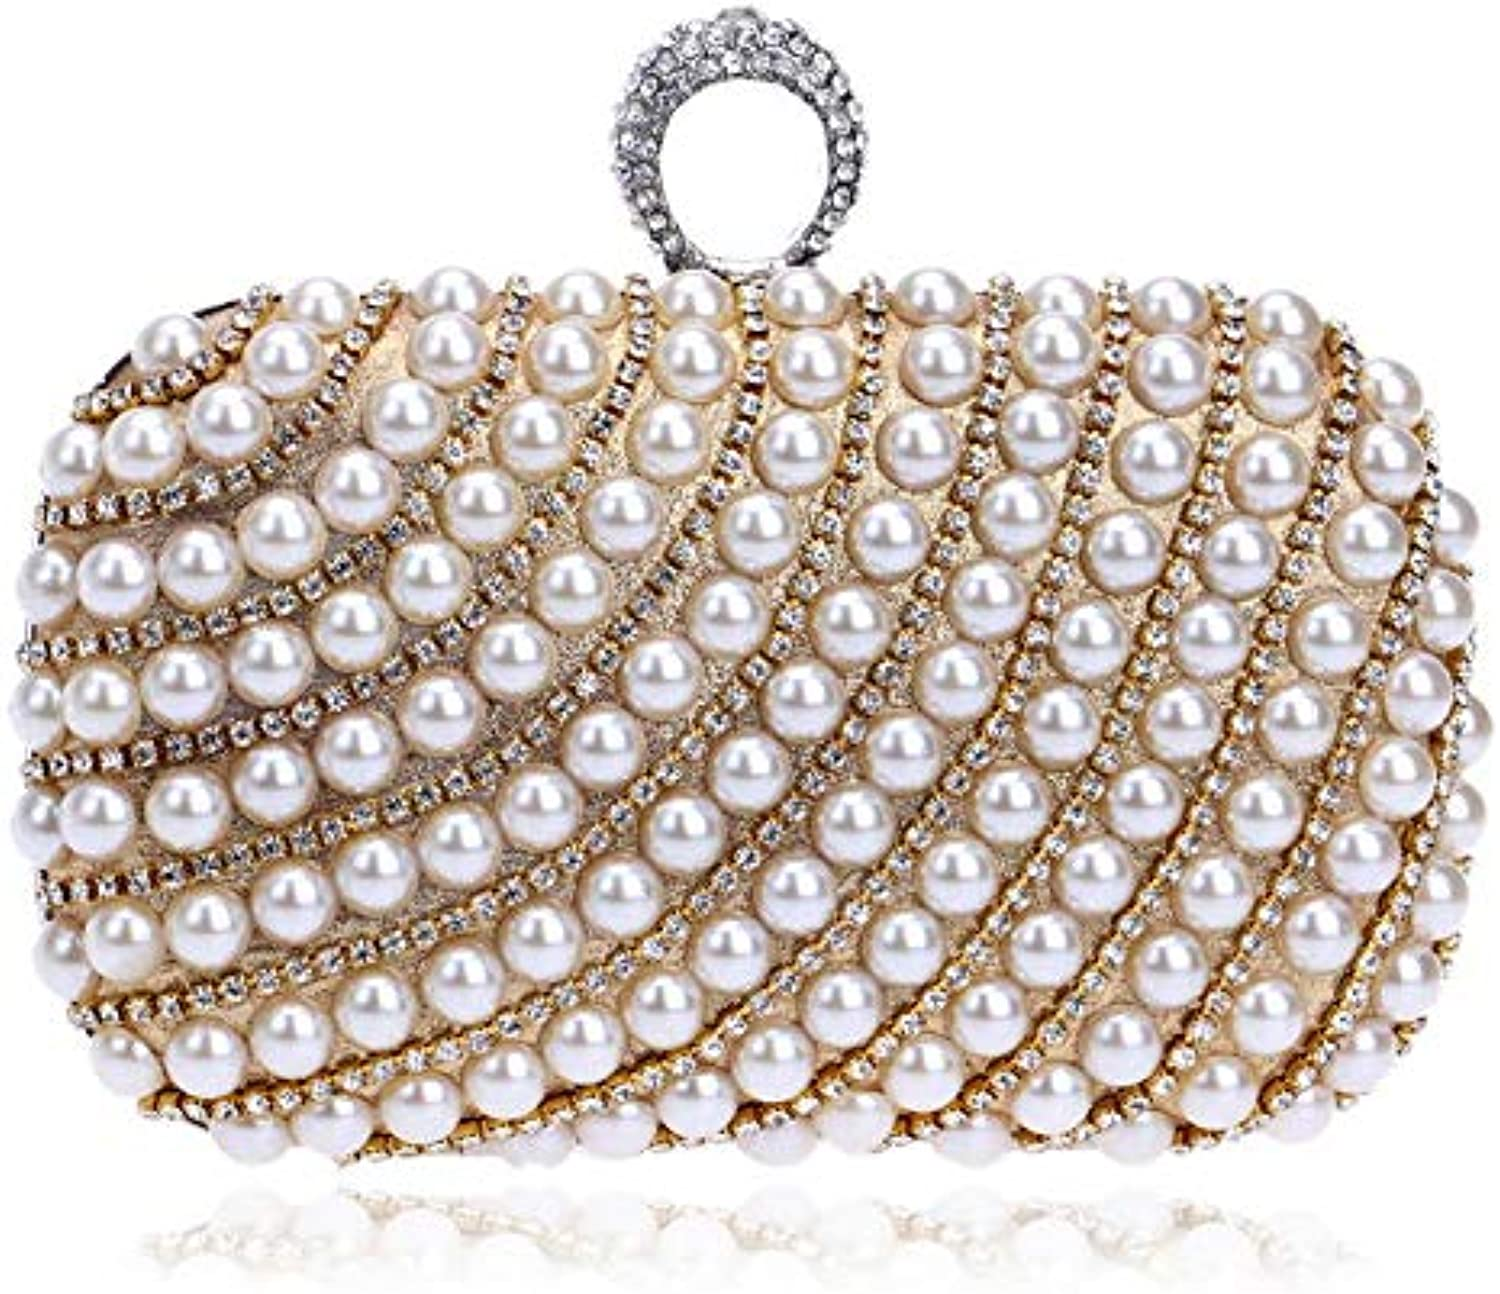 ASHIJIN Pearl Studded Diamond Evening Bag with A Diamond Handbag Women Rhinestone Wedding Clutch Party Bags